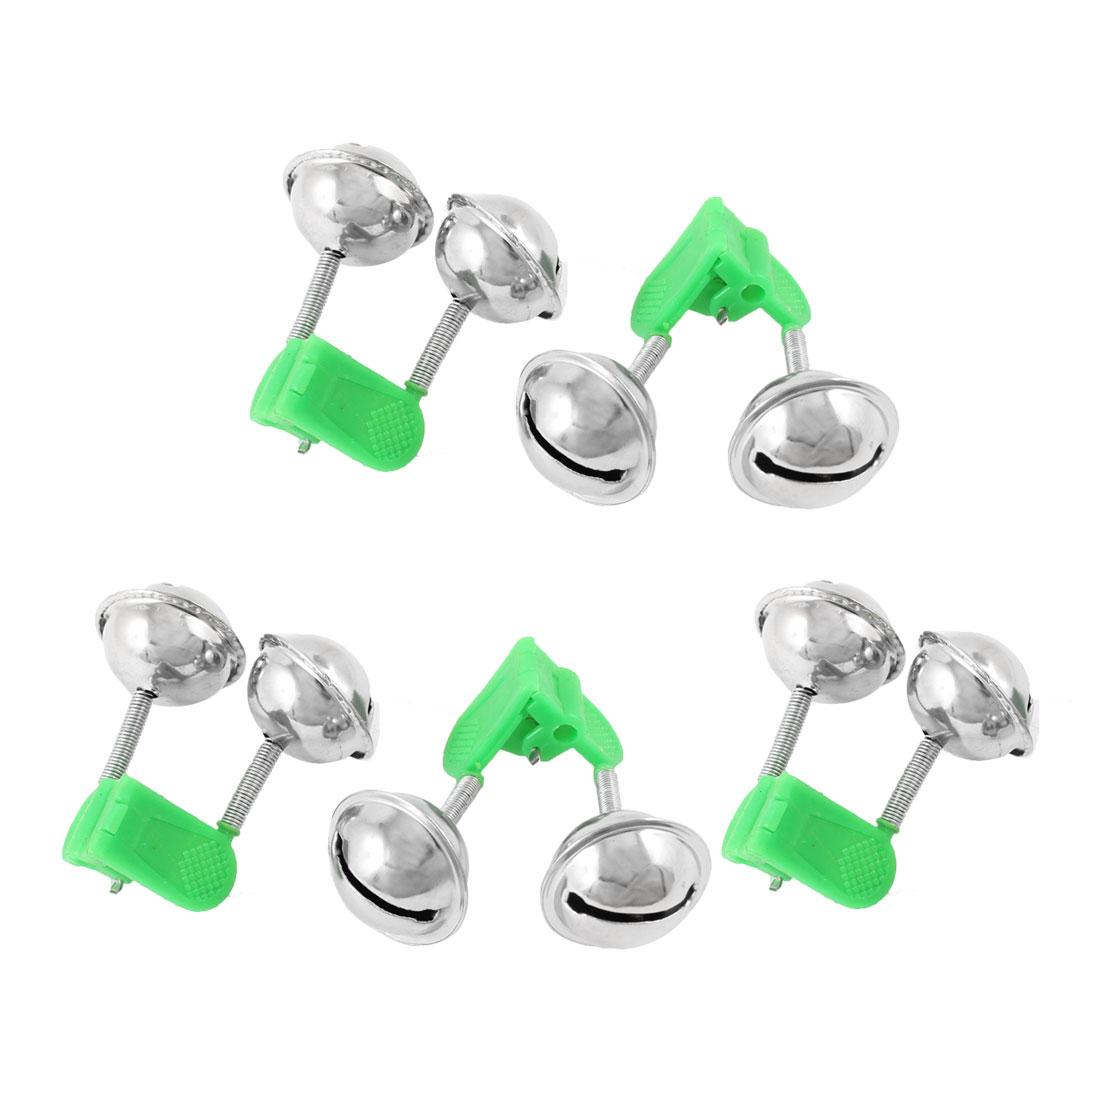 5 Pcs Metal Plastic Angling Fishing Dual Alarm Bells w Clip Green